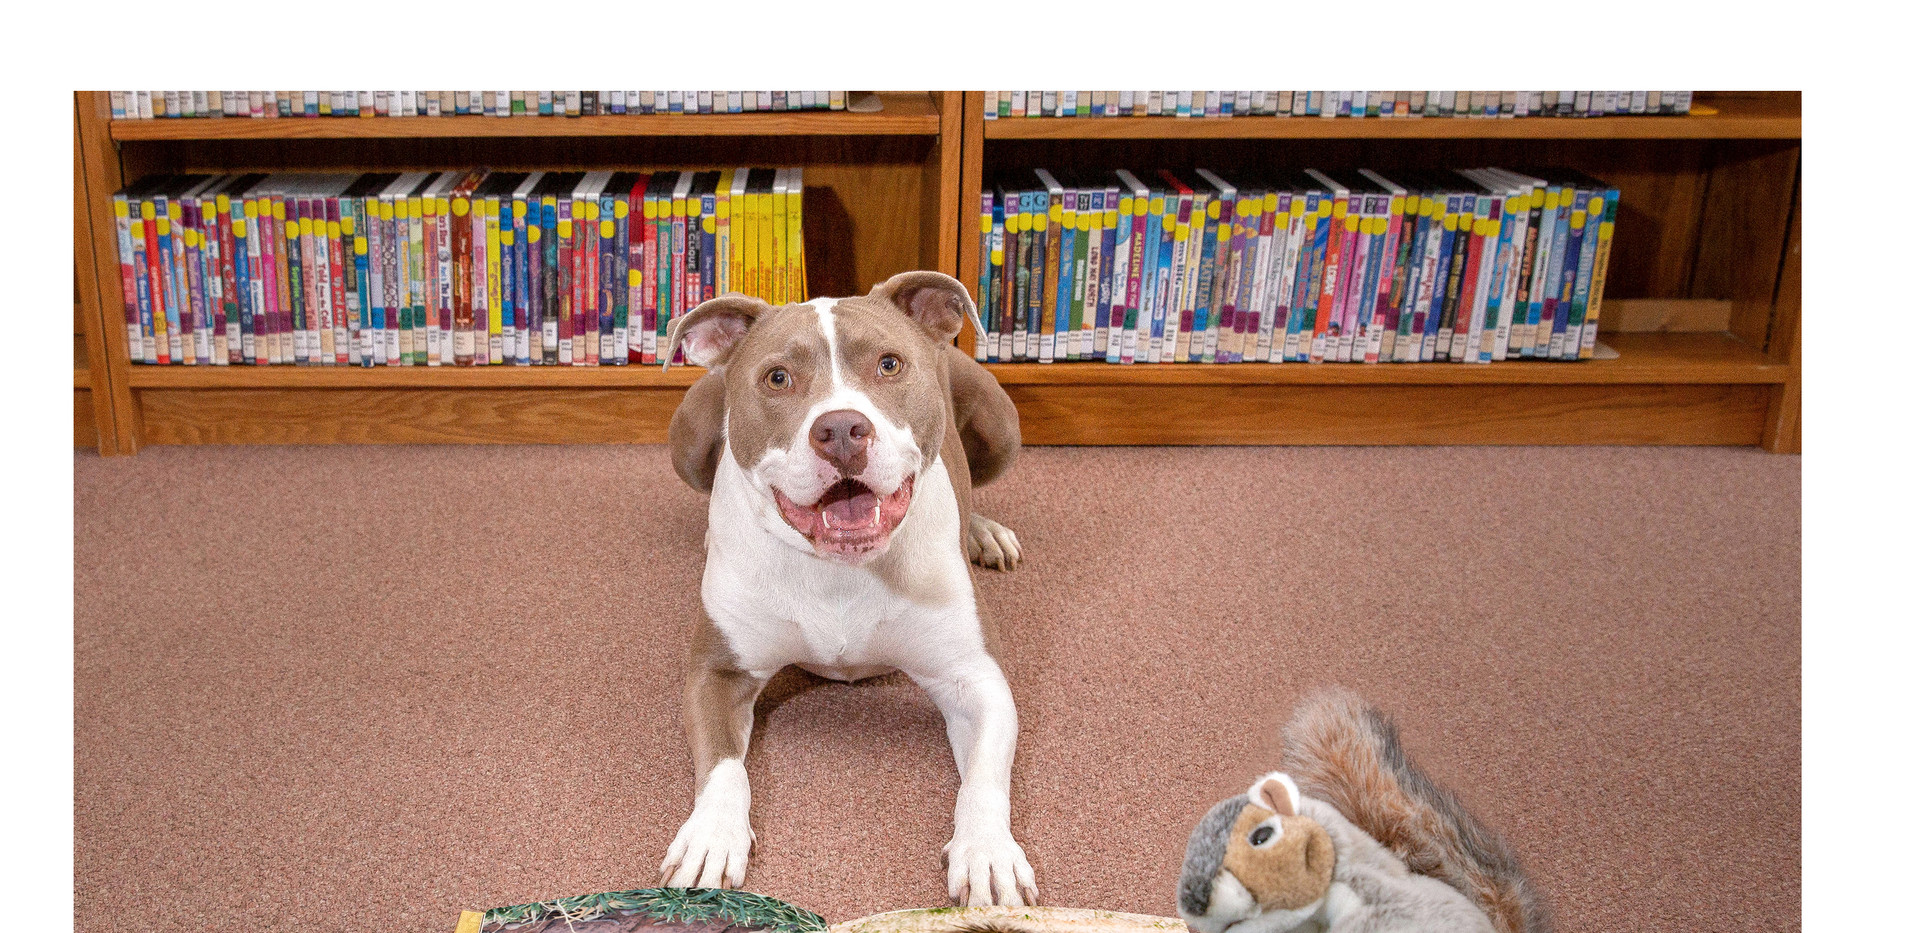 Jazzy Explores The Library page 3.jpg